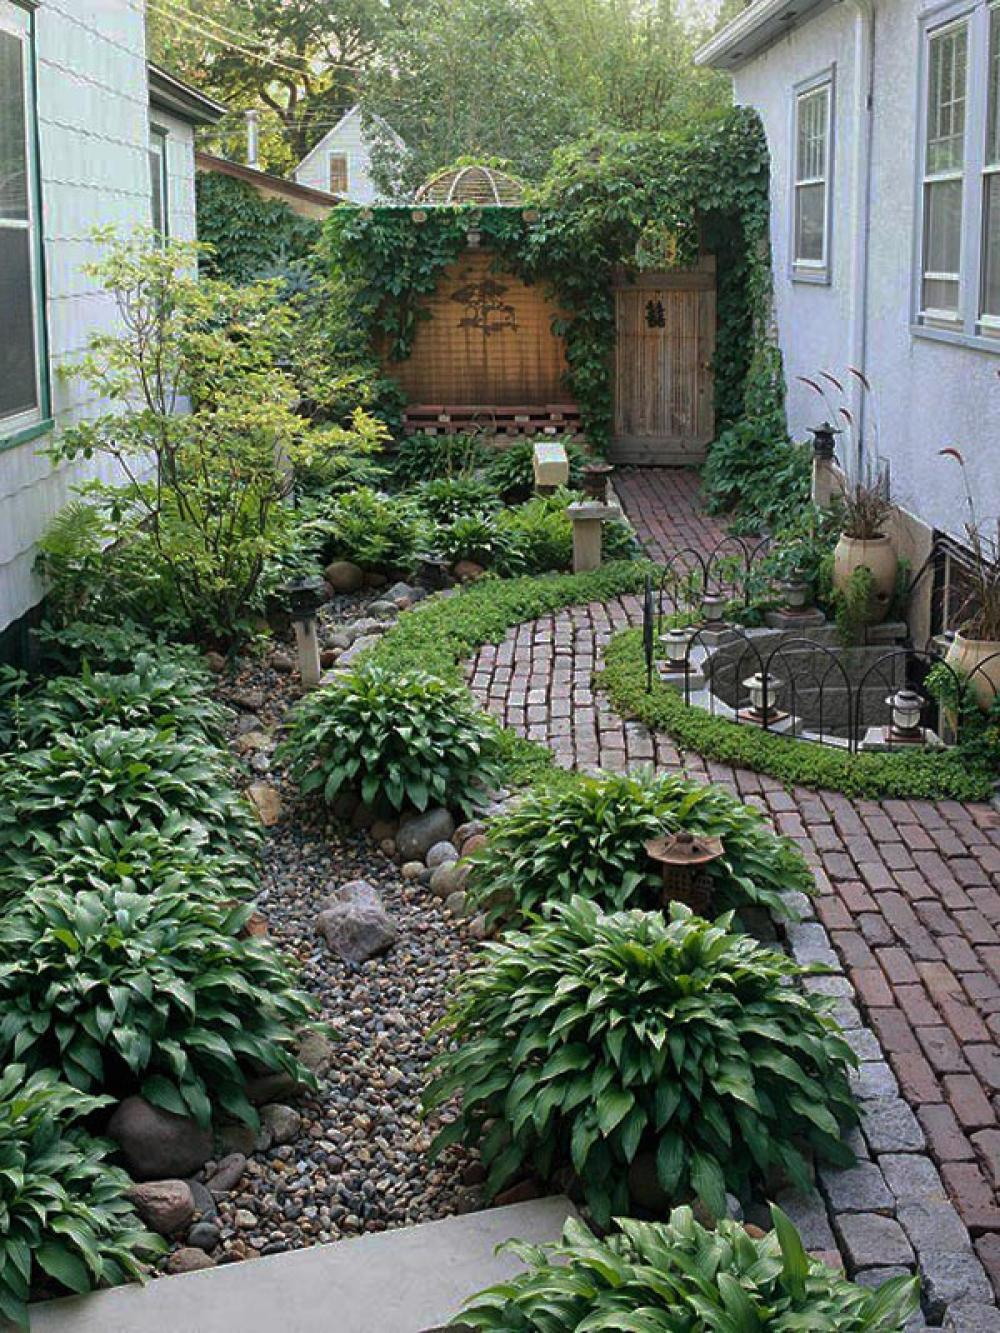 Small garden design in home home and design for Paved garden designs ideas